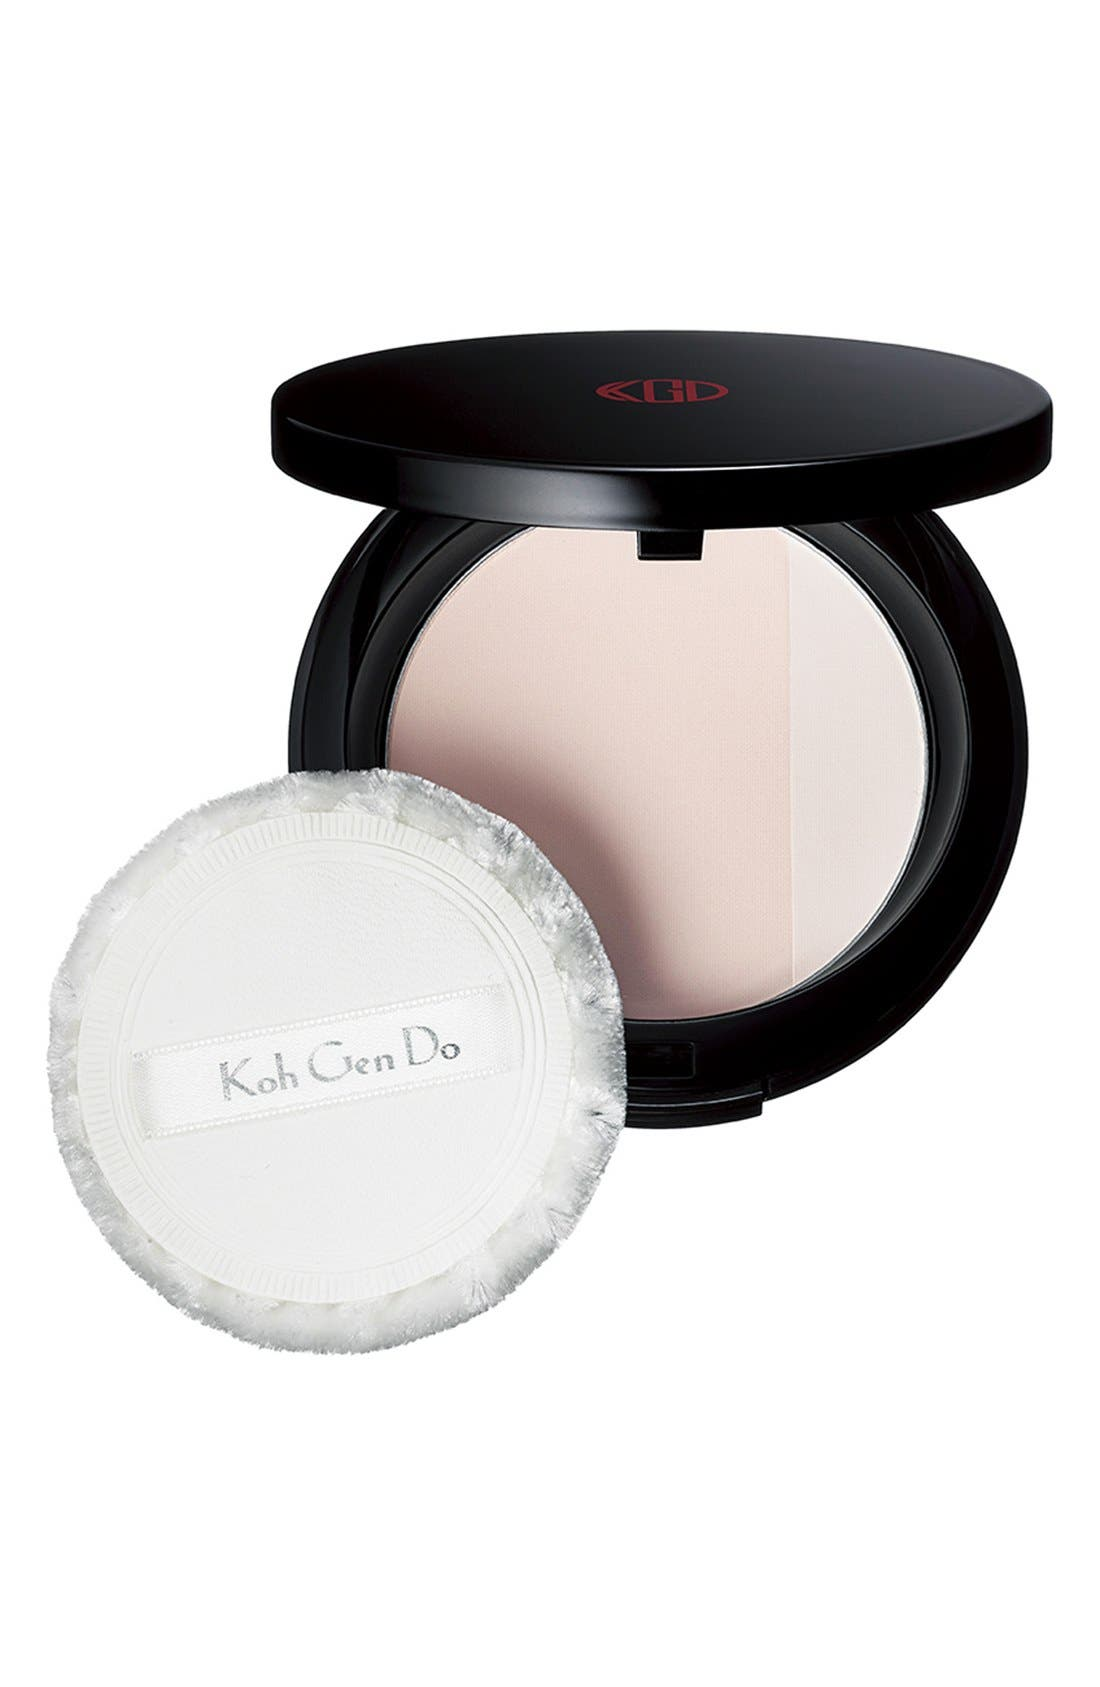 Koh Gen Do 'Maifanshi' Pressed Powder